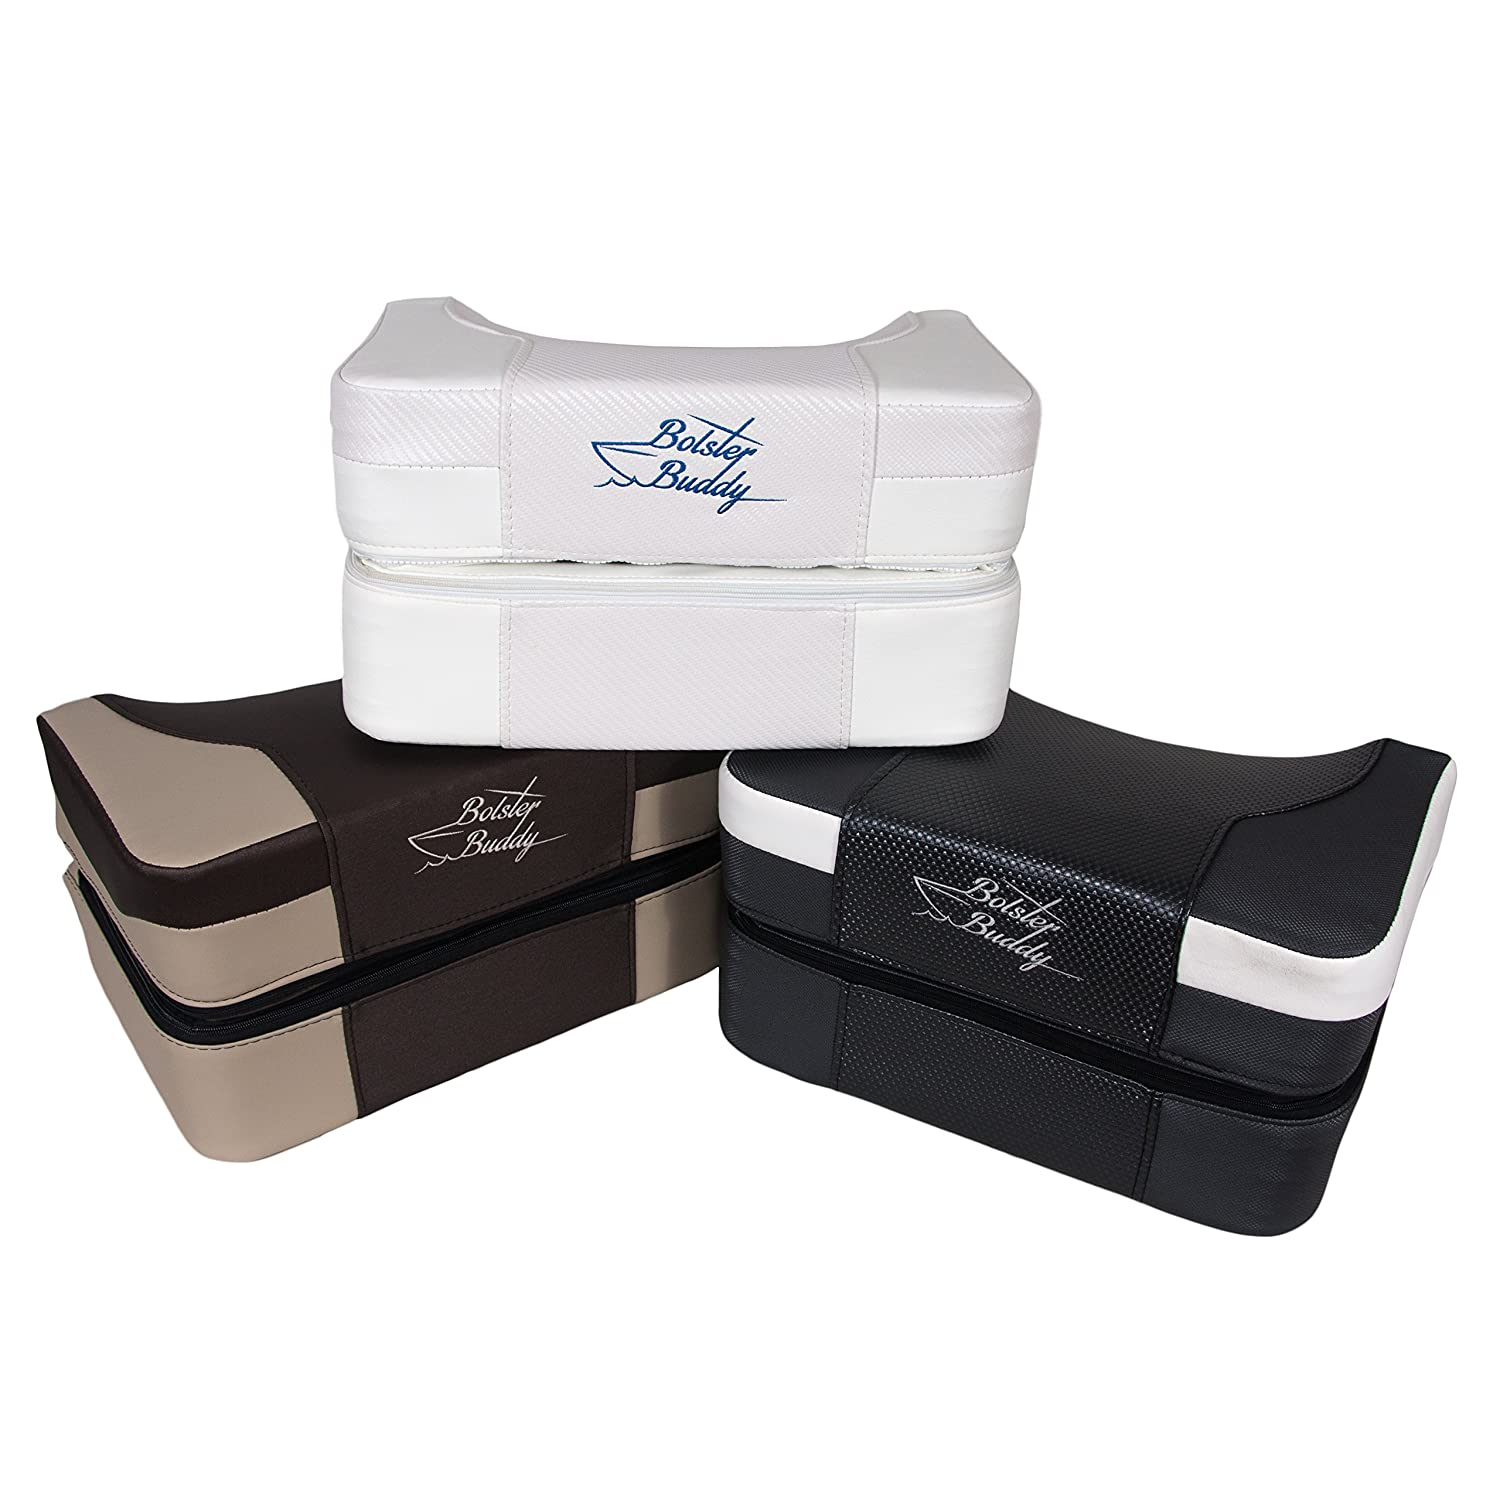 Bolster Buddy Premium Boat Seat Cushion Small Variety of Colors